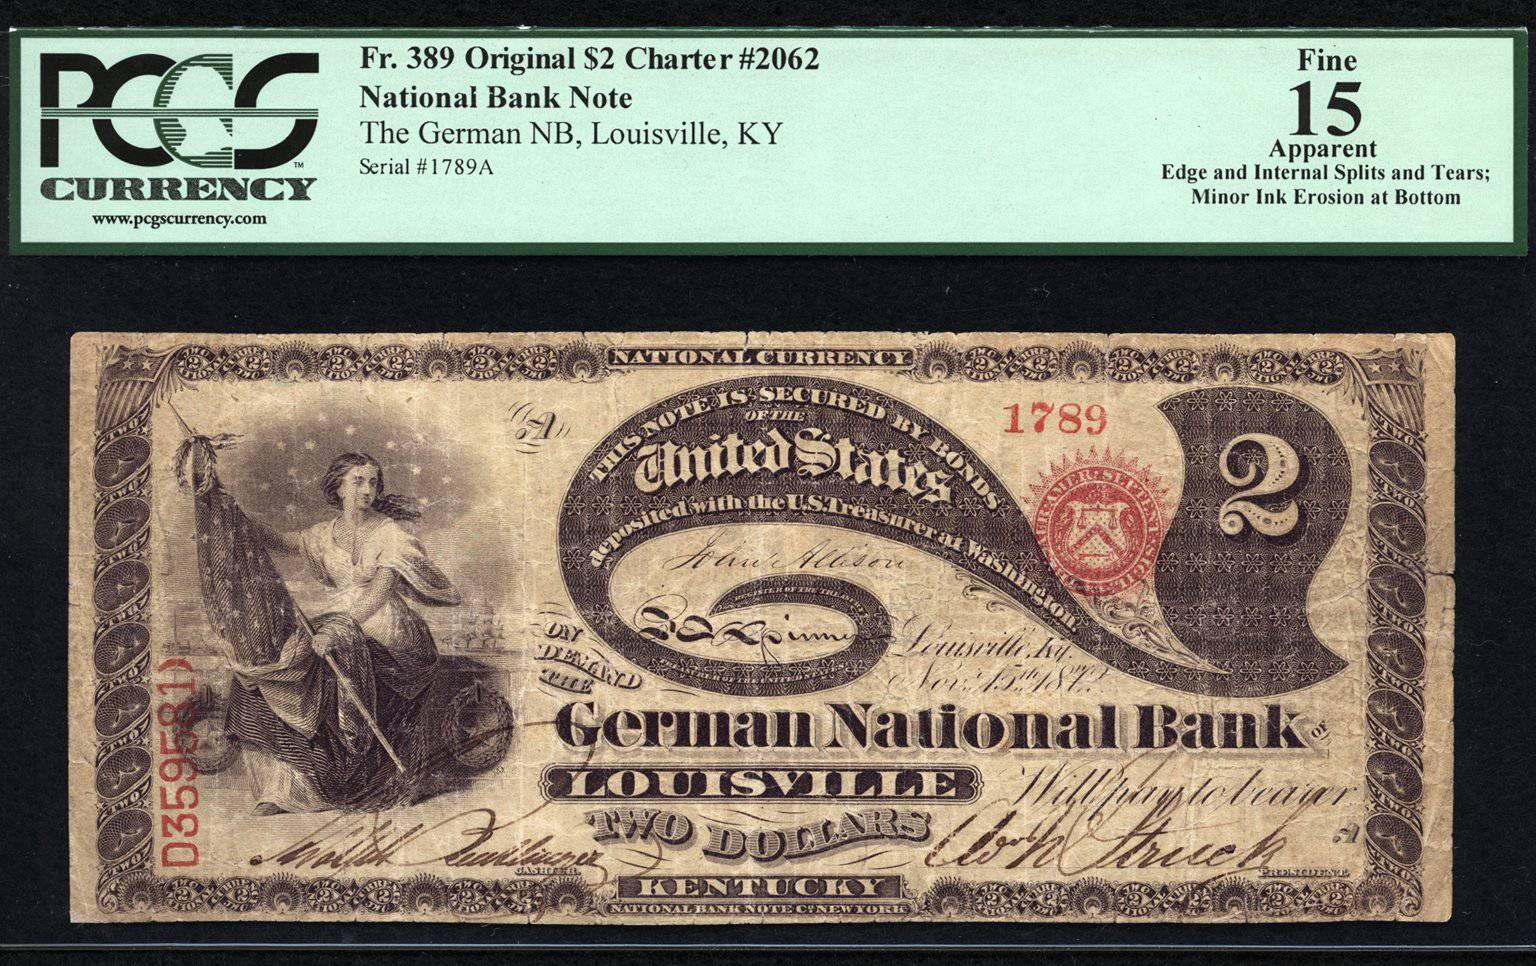 1789 - $2 Note - Original Series National Bank Note - FR 389 - PCGS F15 Apparent